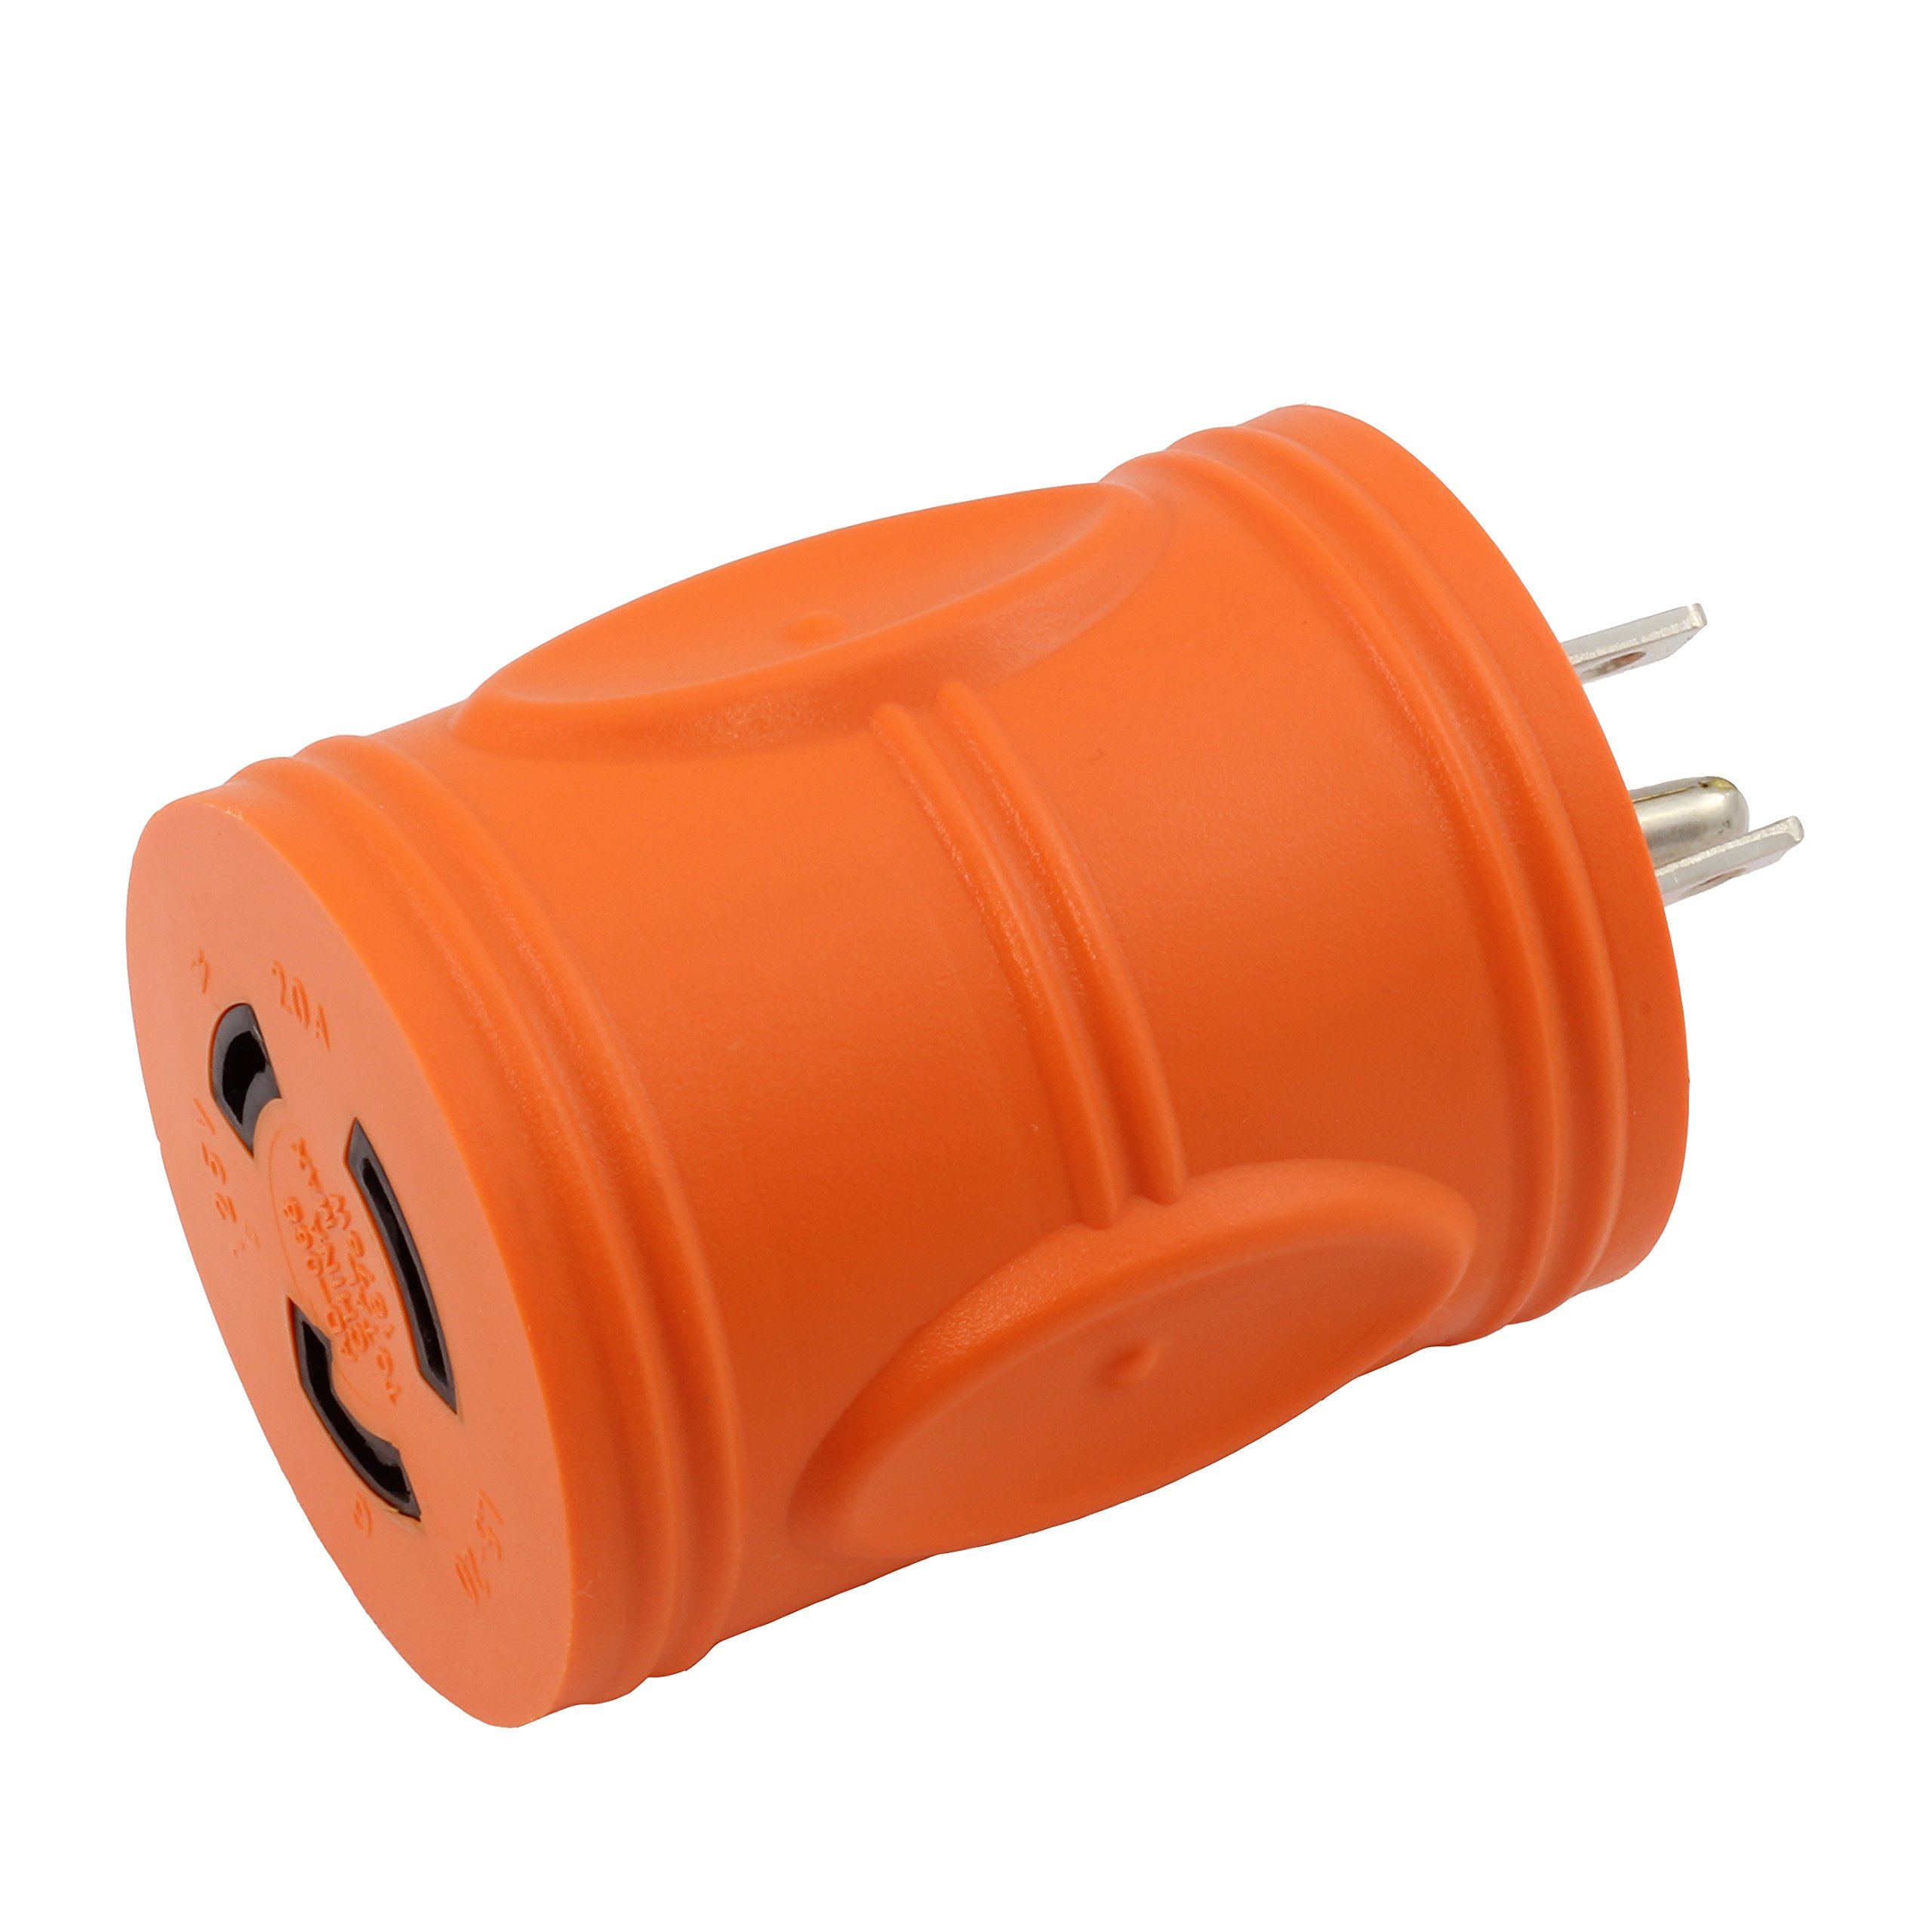 AC WORKS [AD515L520] Locking Adapter Household 15Amp 5-15P Plug to Locking 20Amp L5-20R Female Connector